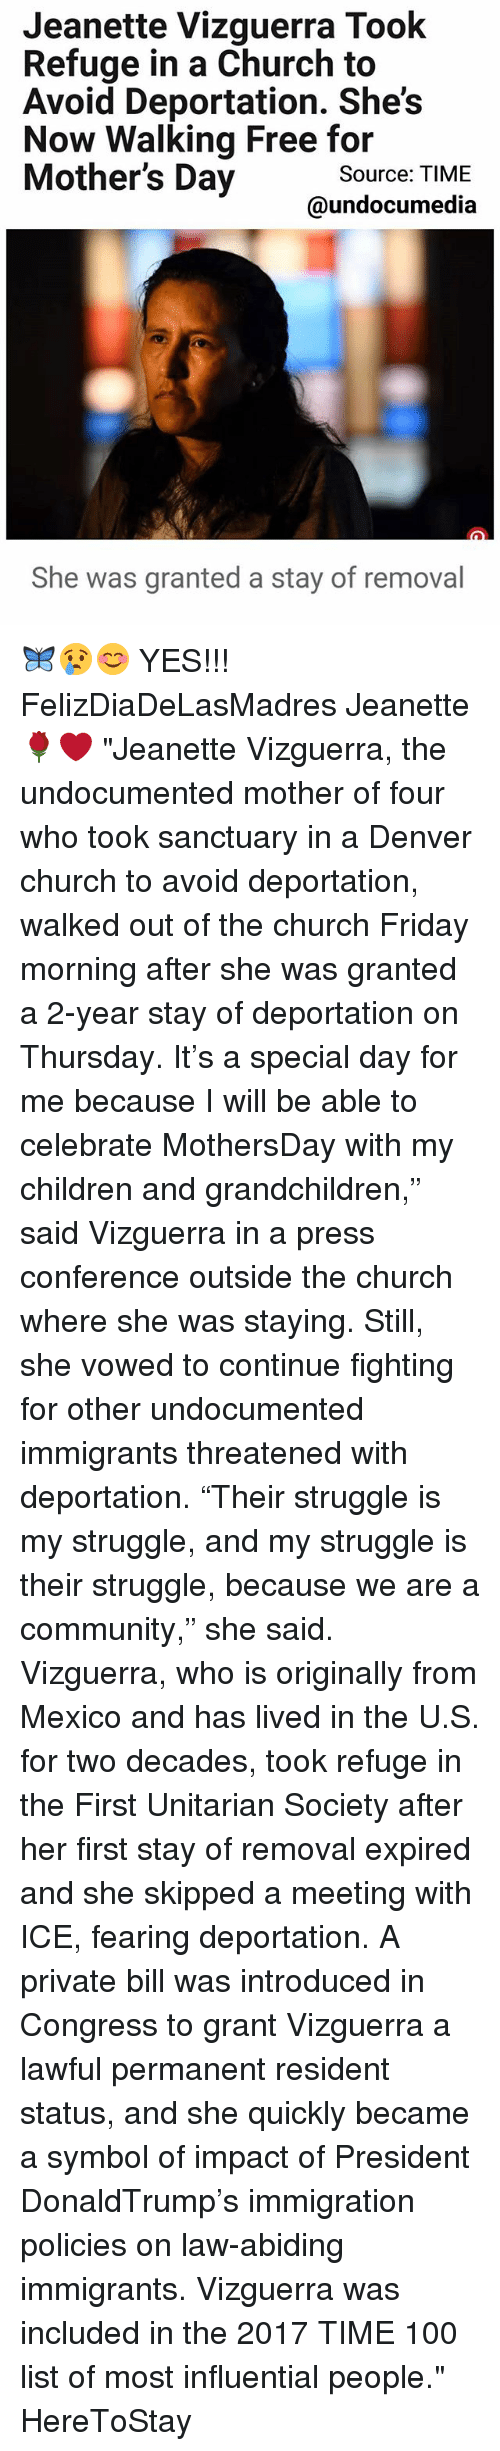 """Anaconda, Children, and Church: Jeanette Vizguerra Took  Refuge in a Church to  Avoid Deportation. She's  Now Walking Free for  Mother's Day  Source: TIME  undocumedia  She was granted a stay of removal 🦋😢😊 YES!!! FelizDiaDeLasMadres Jeanette 🌹❤ """"Jeanette Vizguerra, the undocumented mother of four who took sanctuary in a Denver church to avoid deportation, walked out of the church Friday morning after she was granted a 2-year stay of deportation on Thursday. It's a special day for me because I will be able to celebrate MothersDay with my children and grandchildren,"""" said Vizguerra in a press conference outside the church where she was staying. Still, she vowed to continue fighting for other undocumented immigrants threatened with deportation. """"Their struggle is my struggle, and my struggle is their struggle, because we are a community,"""" she said. Vizguerra, who is originally from Mexico and has lived in the U.S. for two decades, took refuge in the First Unitarian Society after her first stay of removal expired and she skipped a meeting with ICE, fearing deportation. A private bill was introduced in Congress to grant Vizguerra a lawful permanent resident status, and she quickly became a symbol of impact of President DonaldTrump's immigration policies on law-abiding immigrants. Vizguerra was included in the 2017 TIME 100 list of most influential people."""" HereToStay"""